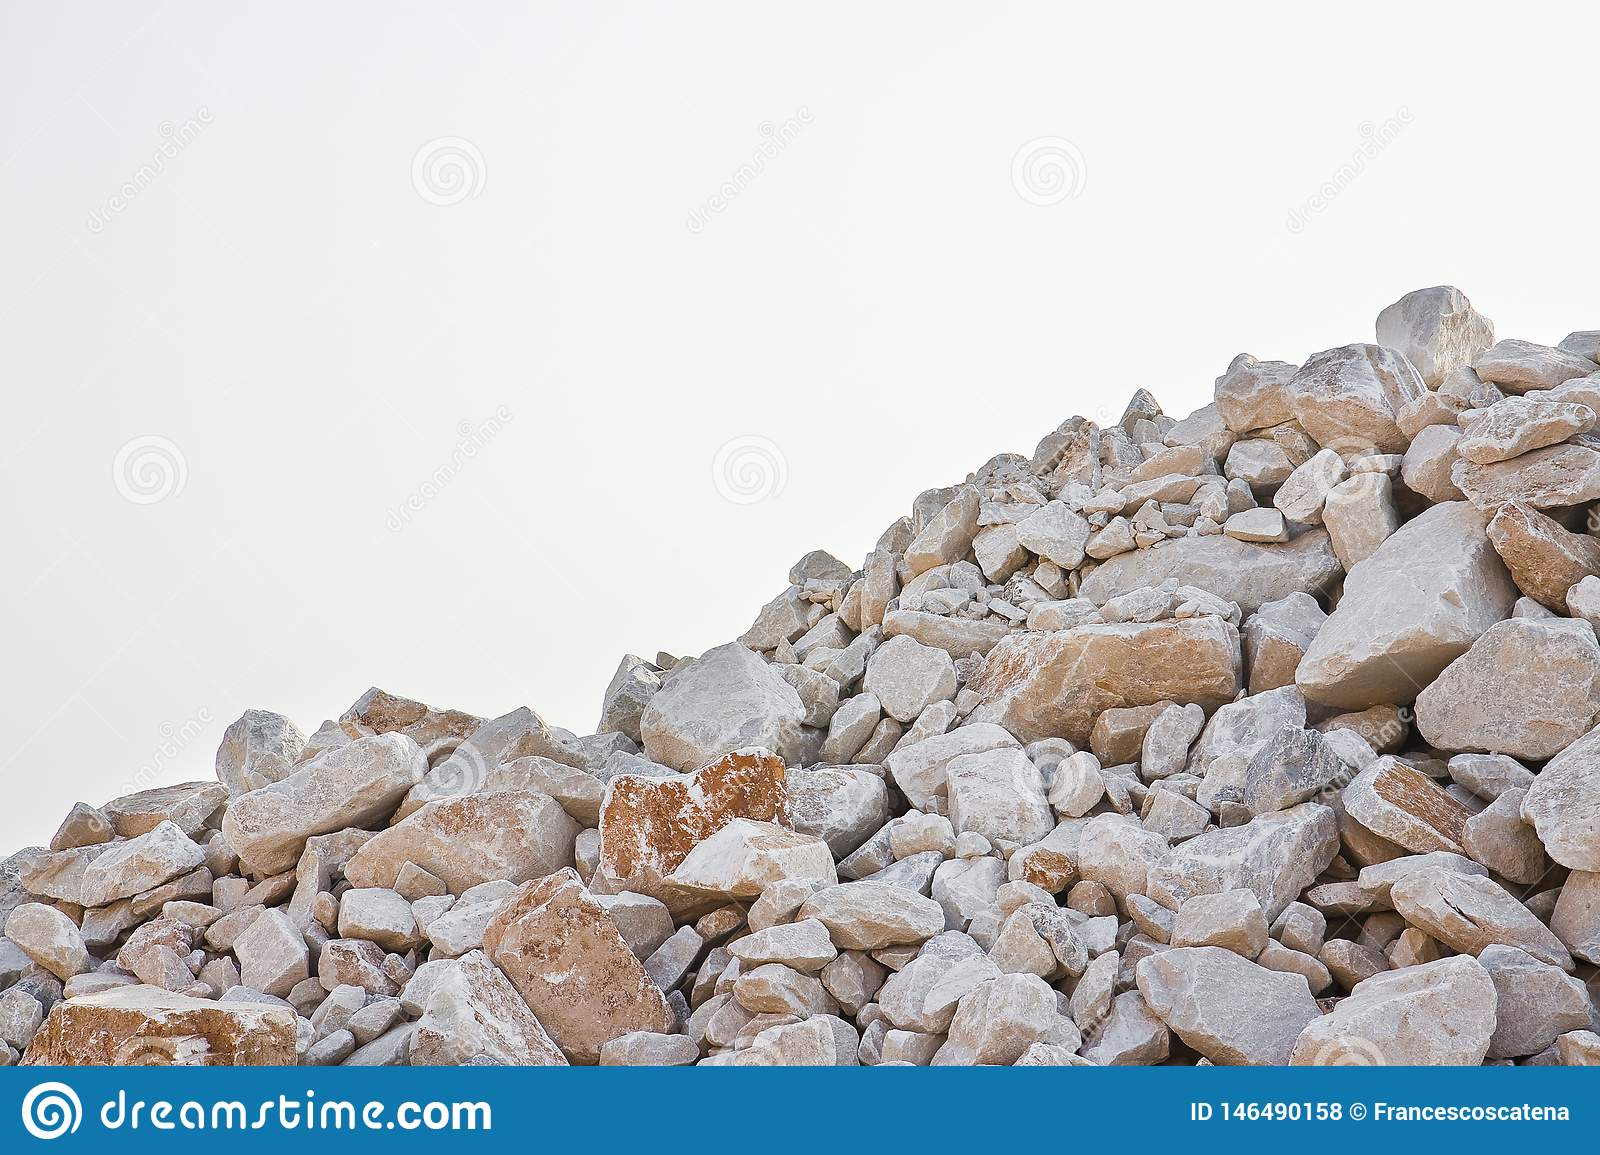 Pile Of Gravel, Stones And Cliffs Of Different Sizes On